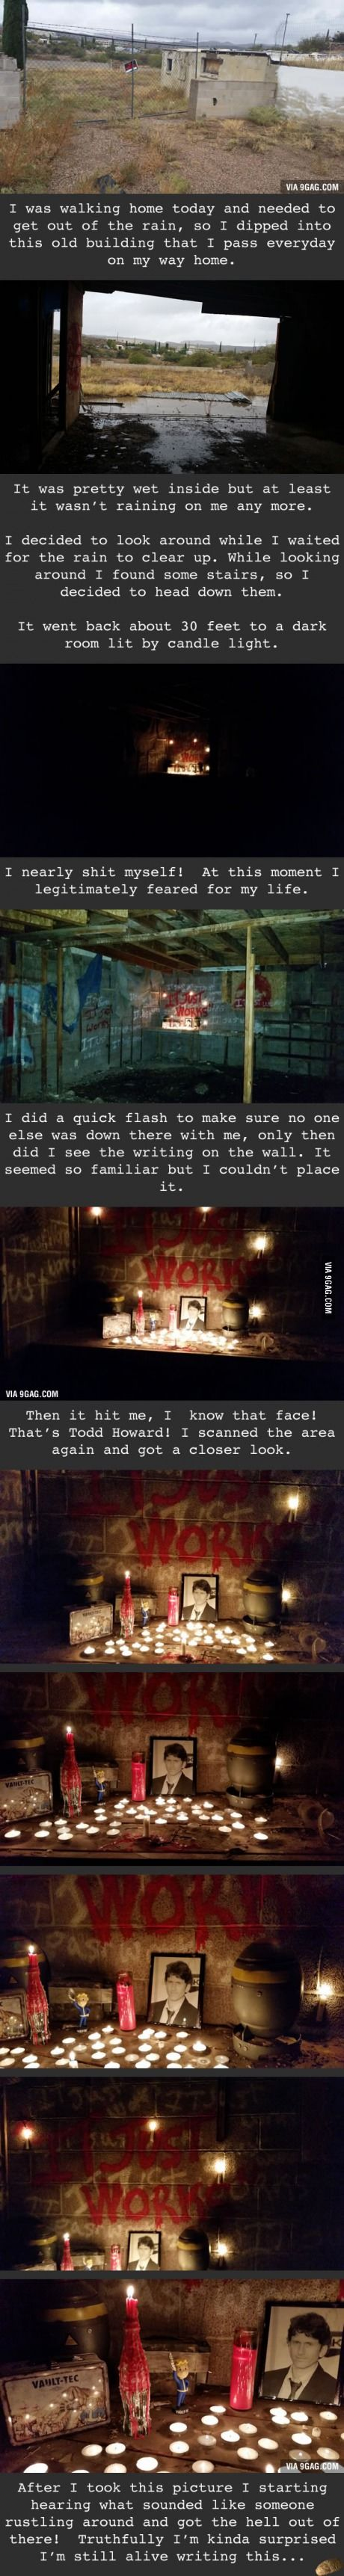 """Some dude found a """"Fallout Shrine"""" in an old building..."""